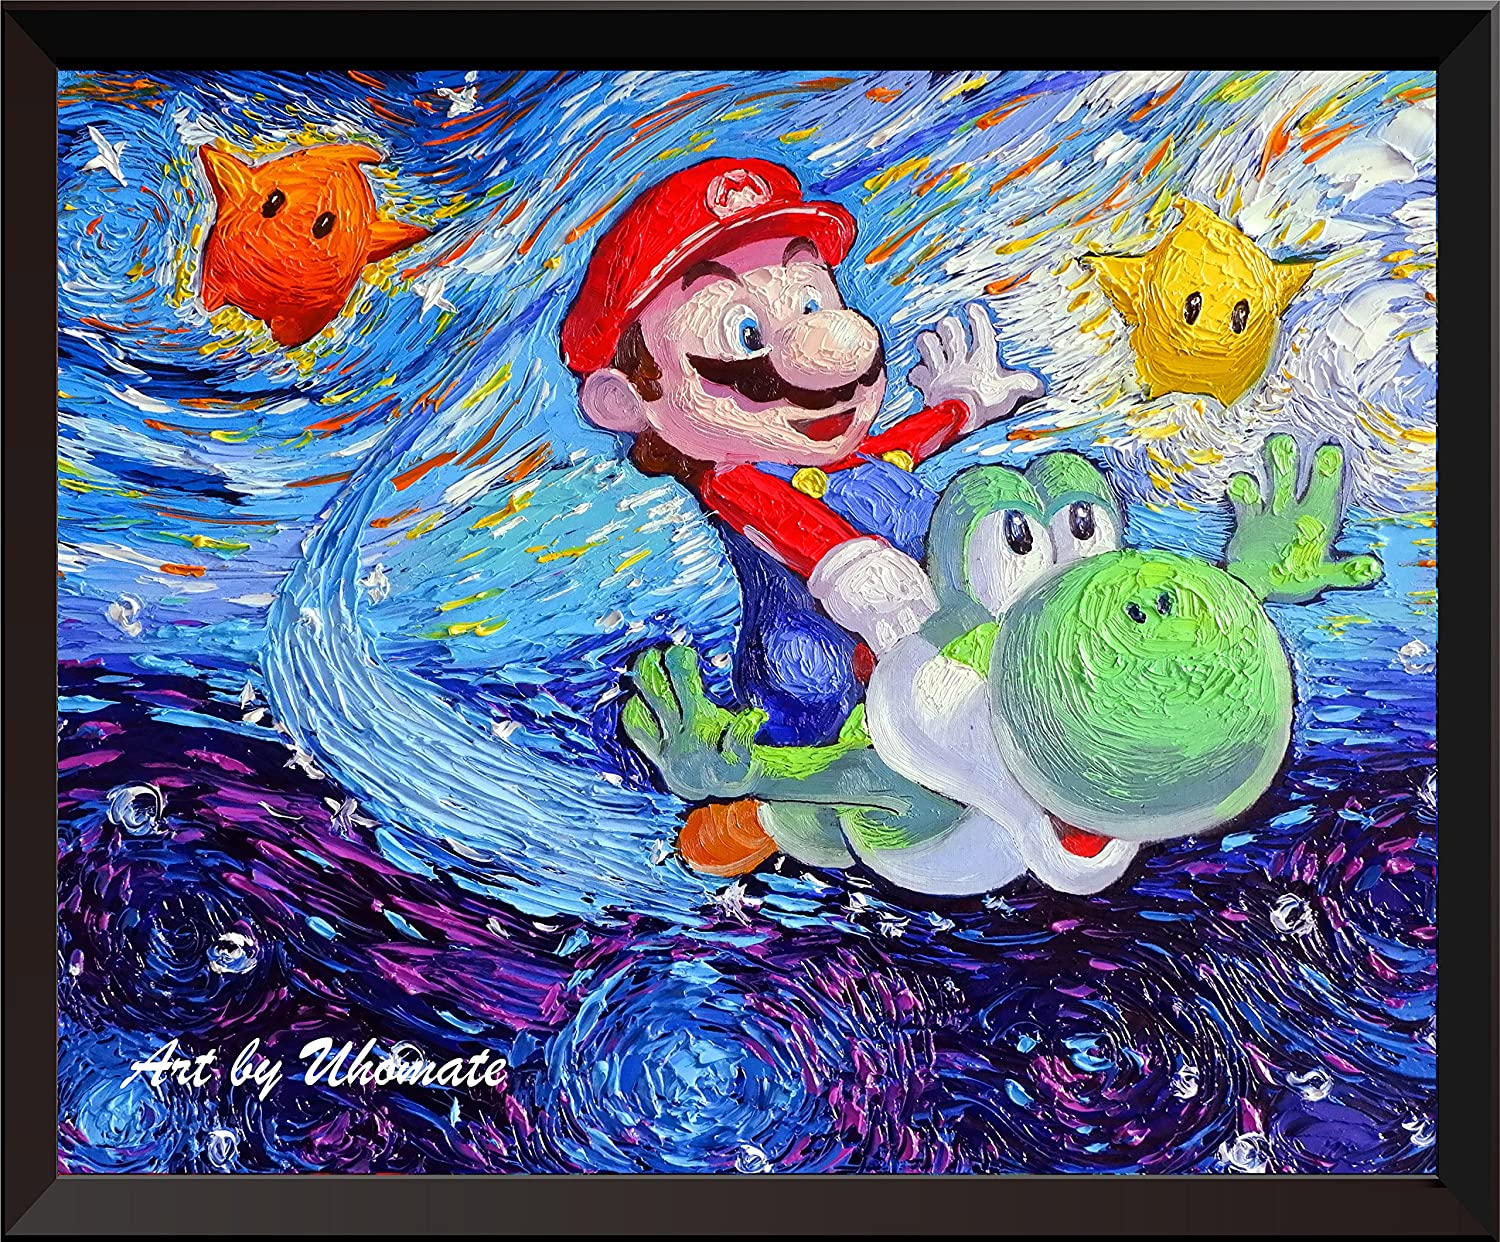 Uhomate Super Mario Bros Under The Sea Wall Decor Vincent Van Gogh Starry  Night Posters Home Canvas Wall Art Print Anniversary Gifts Baby Gift  Nursery